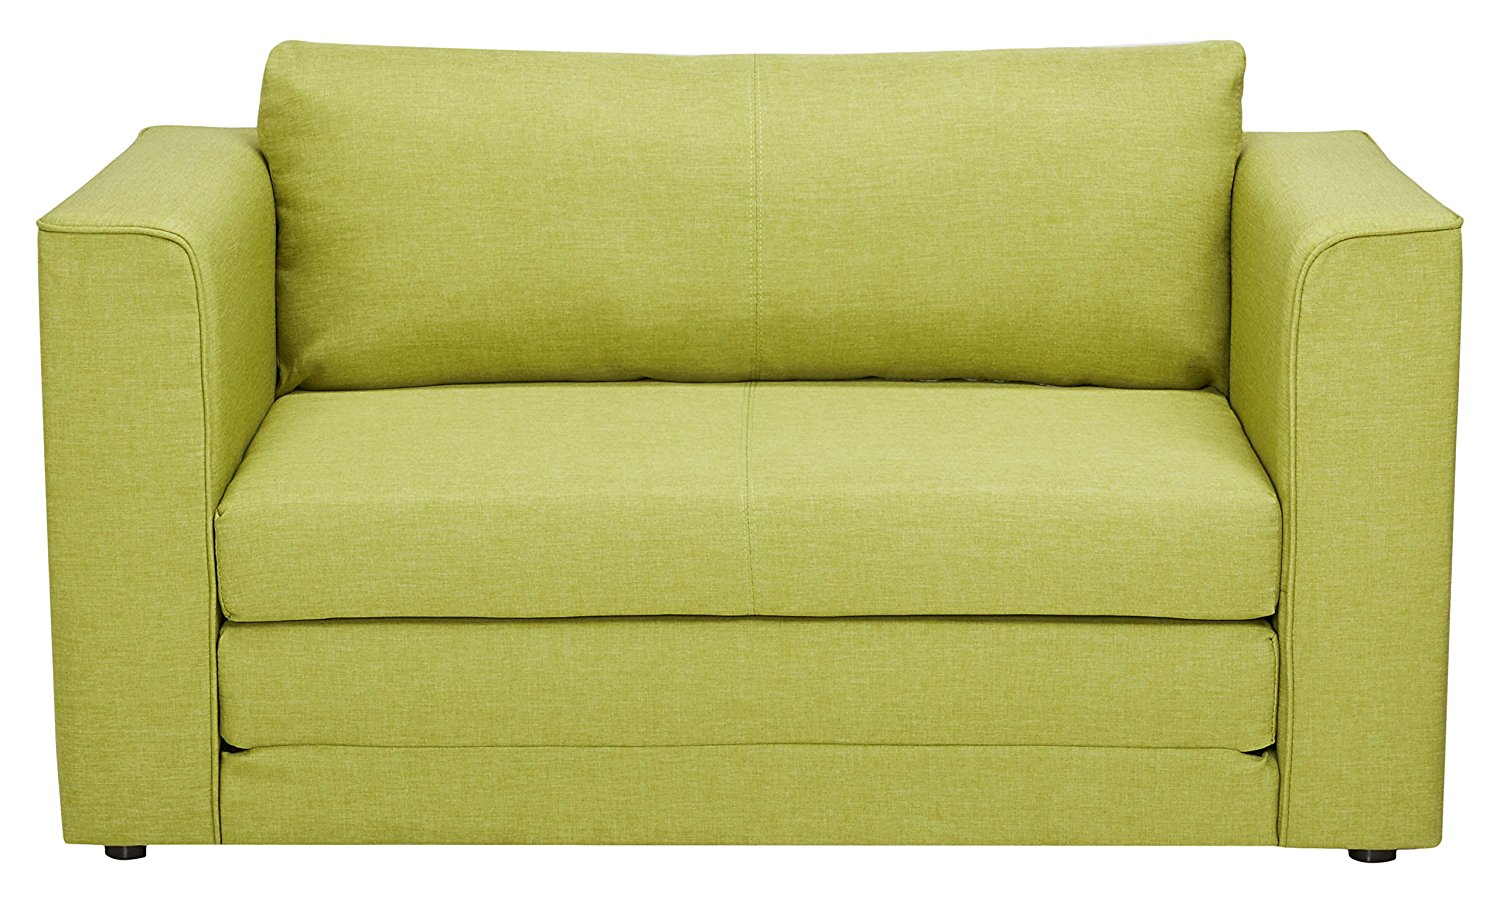 Container Furniture Direct Ava Collection Modern Reversible Fabric Upholstered Living Room Loveseat and Sofa Bed, Lime Green